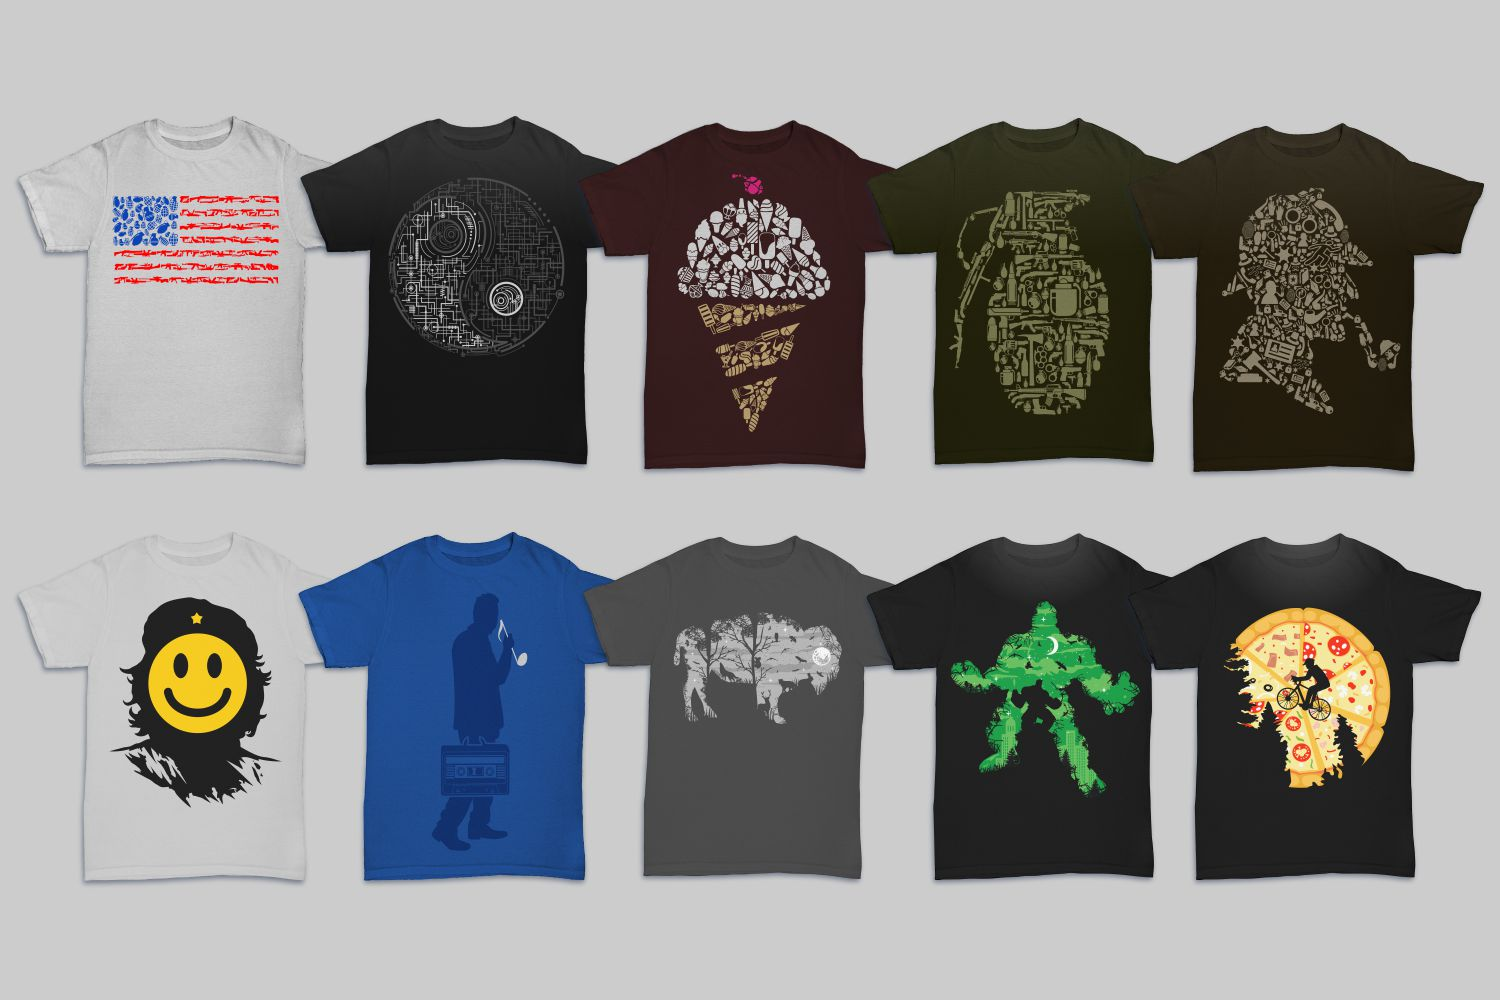 Tshirt Designs Mega Bundle Pack 1 + Pack 2 example image 5